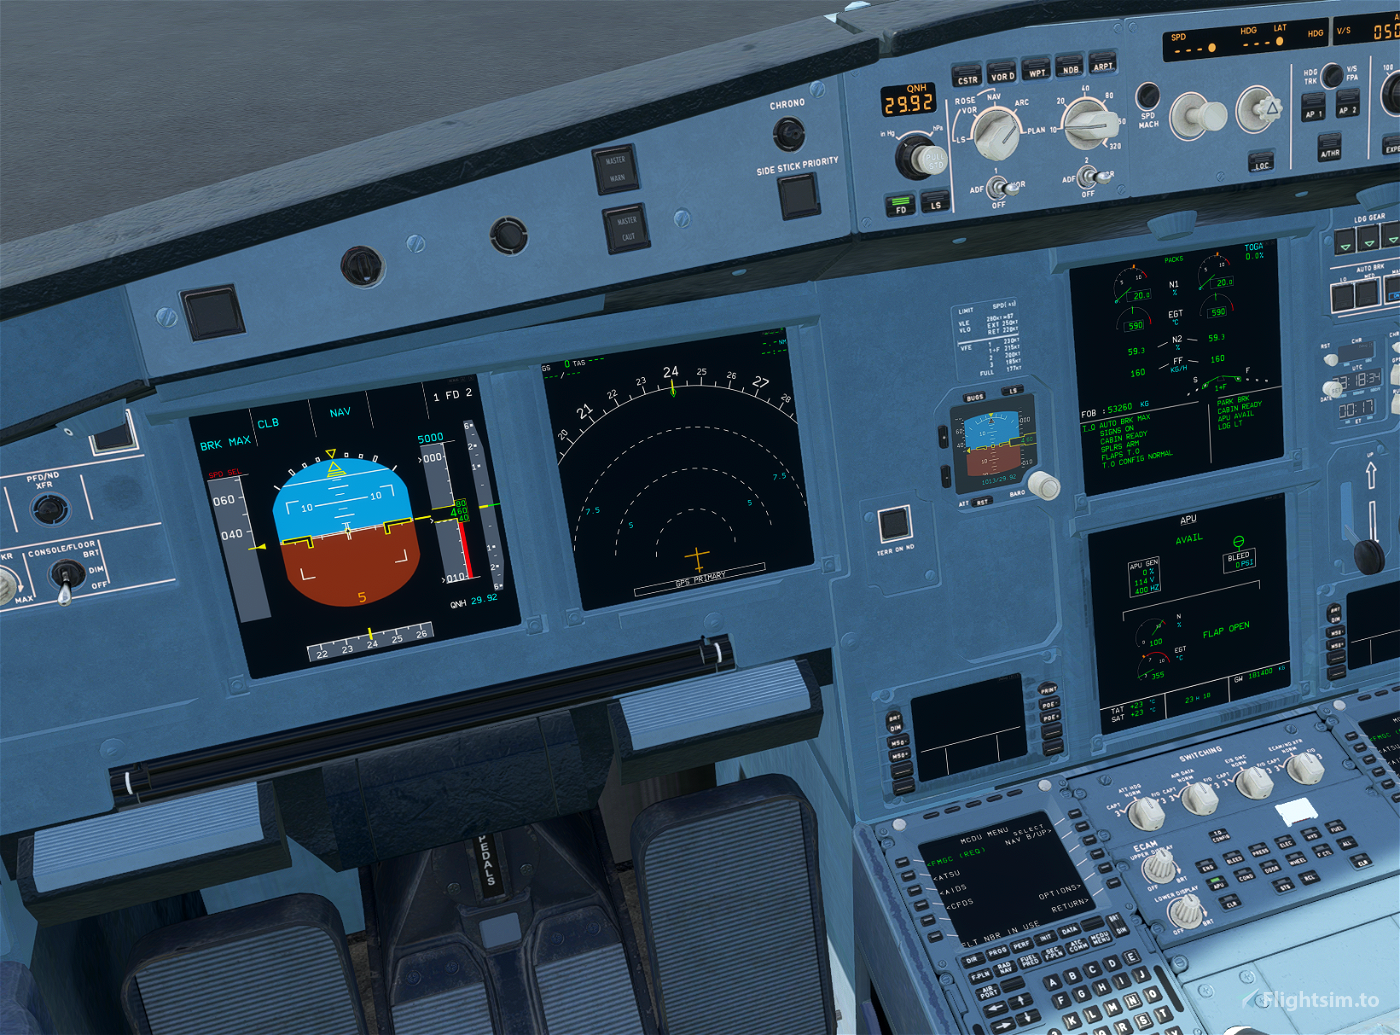 Project Mega Pack A330 FBW A32NX Compatibility Mod Flight Simulator 2020